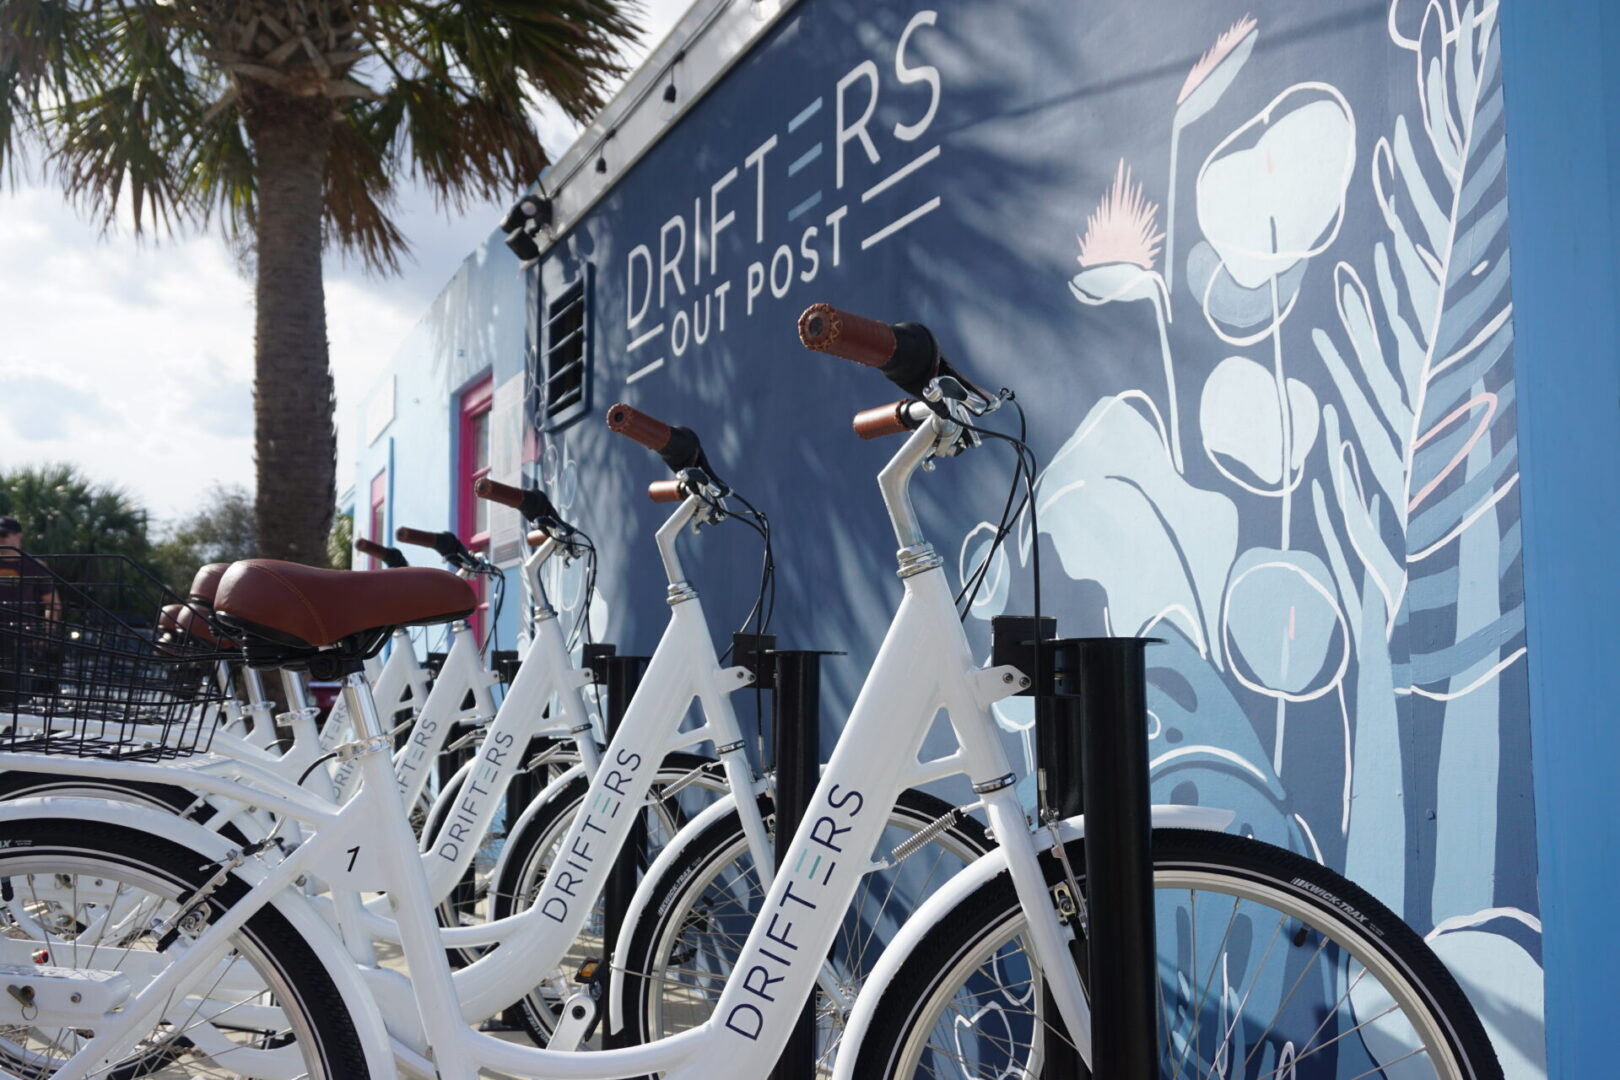 Drifters Outpost bicycles